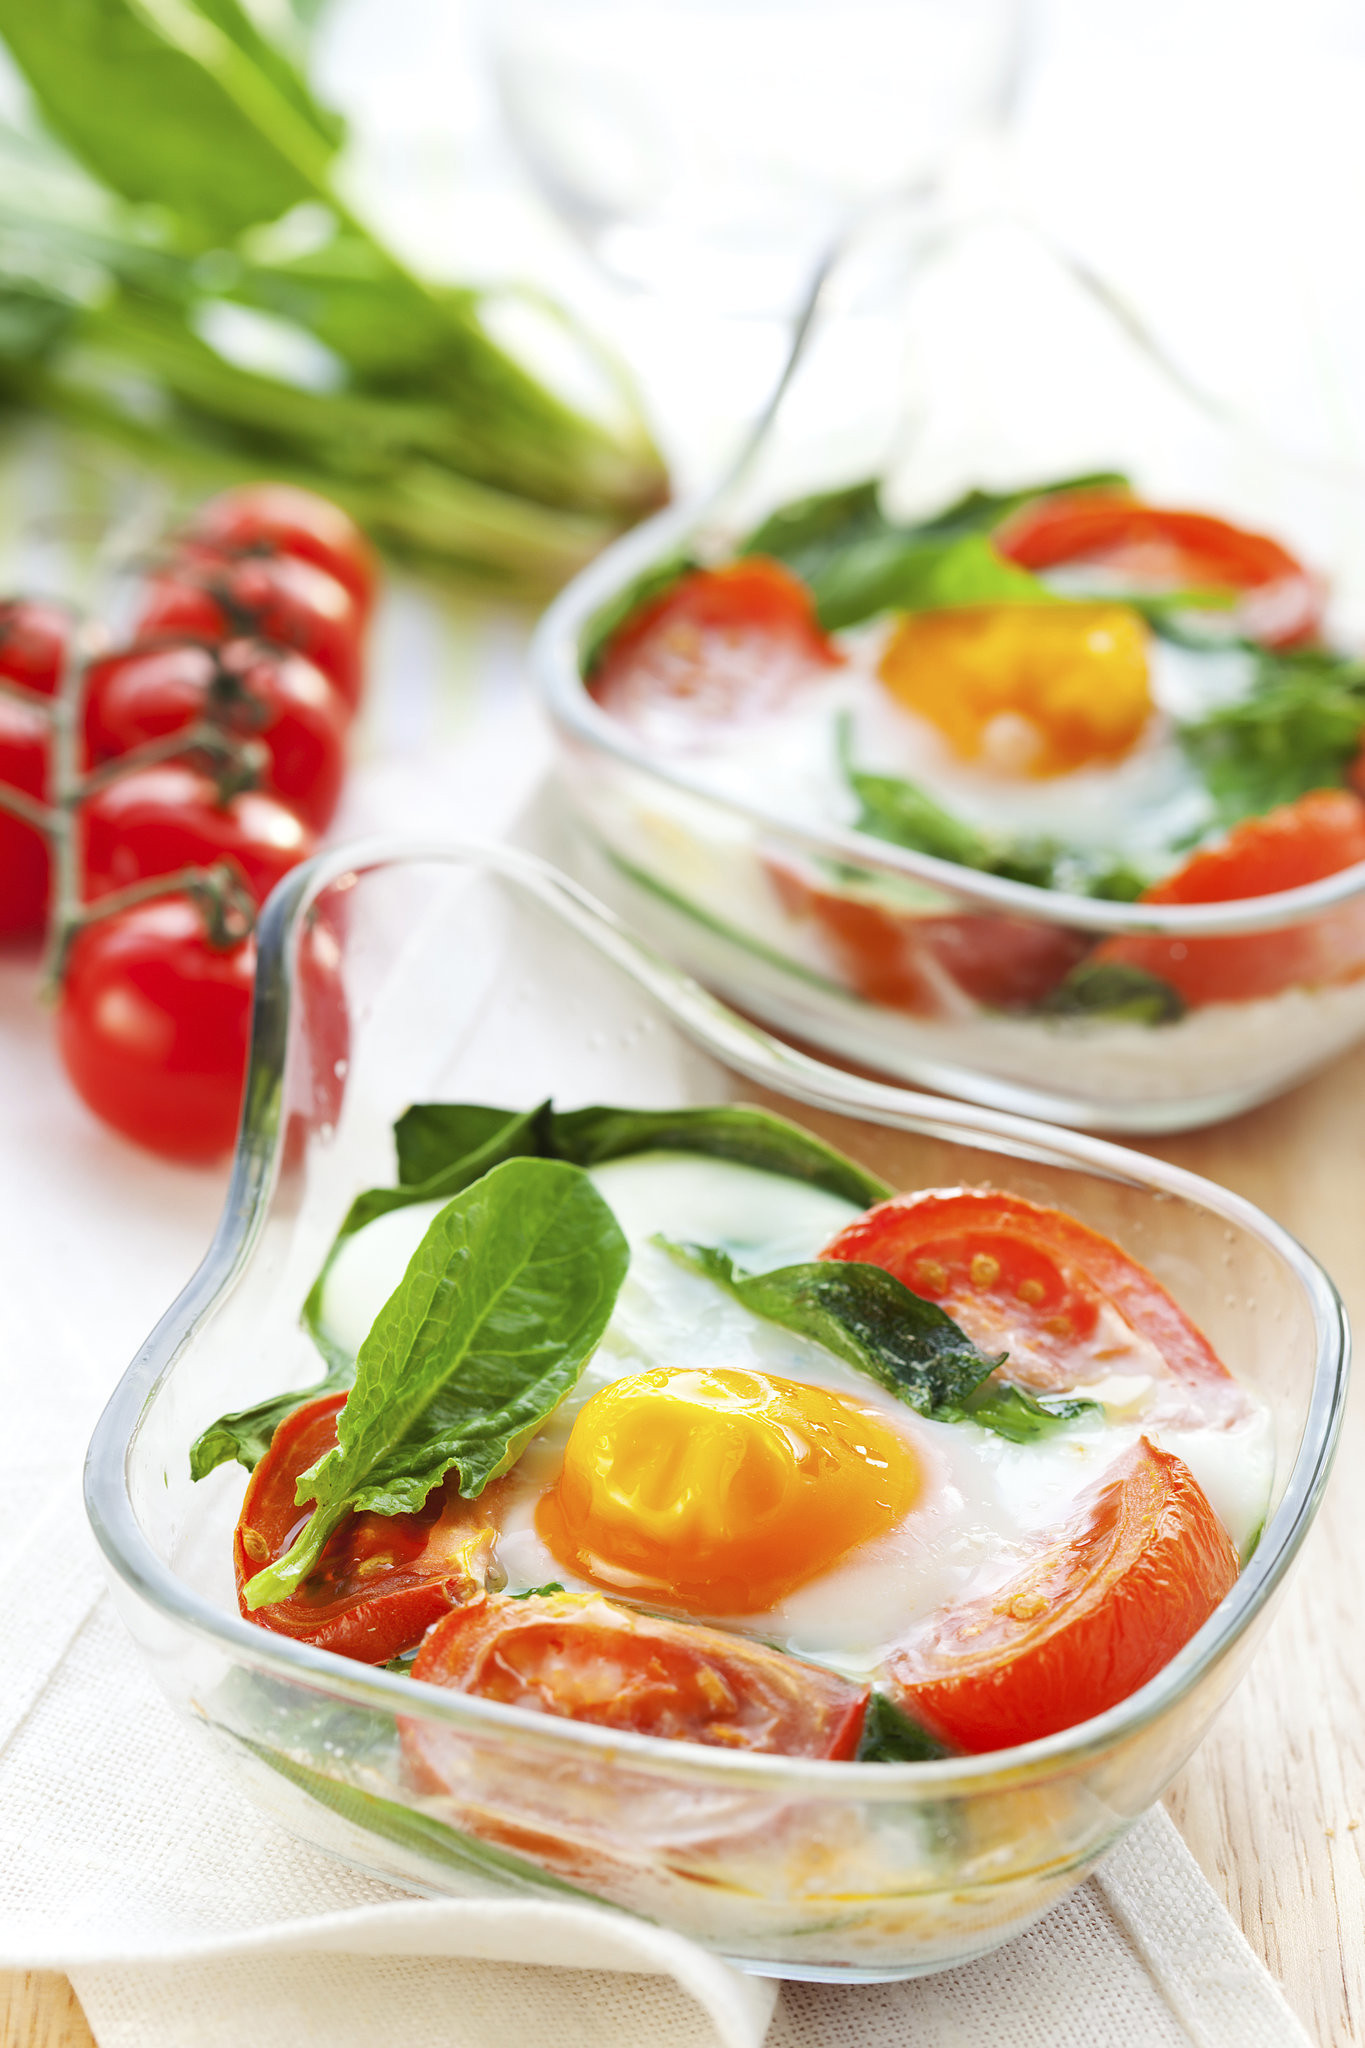 Healthy Nutritious Breakfast  50 High Protein Breakfasts That Are Healthy And Delicious